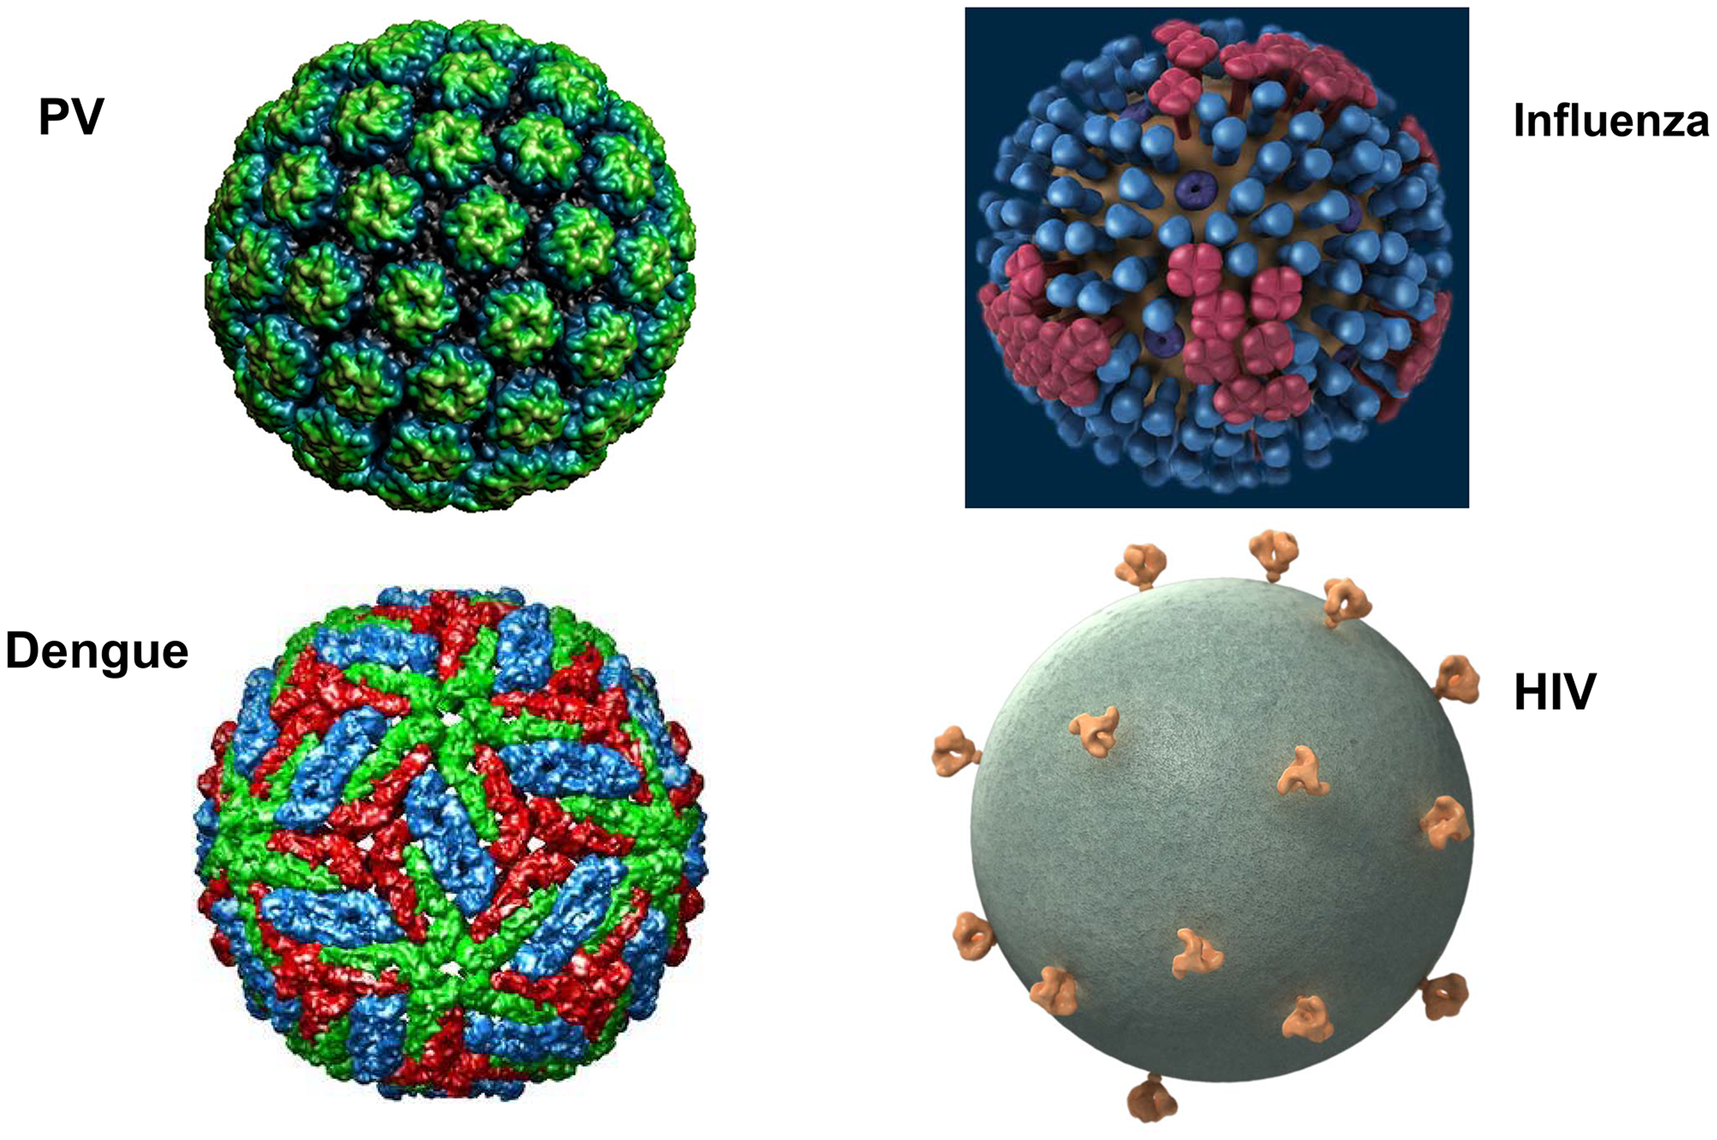 What's different about HIV virions?